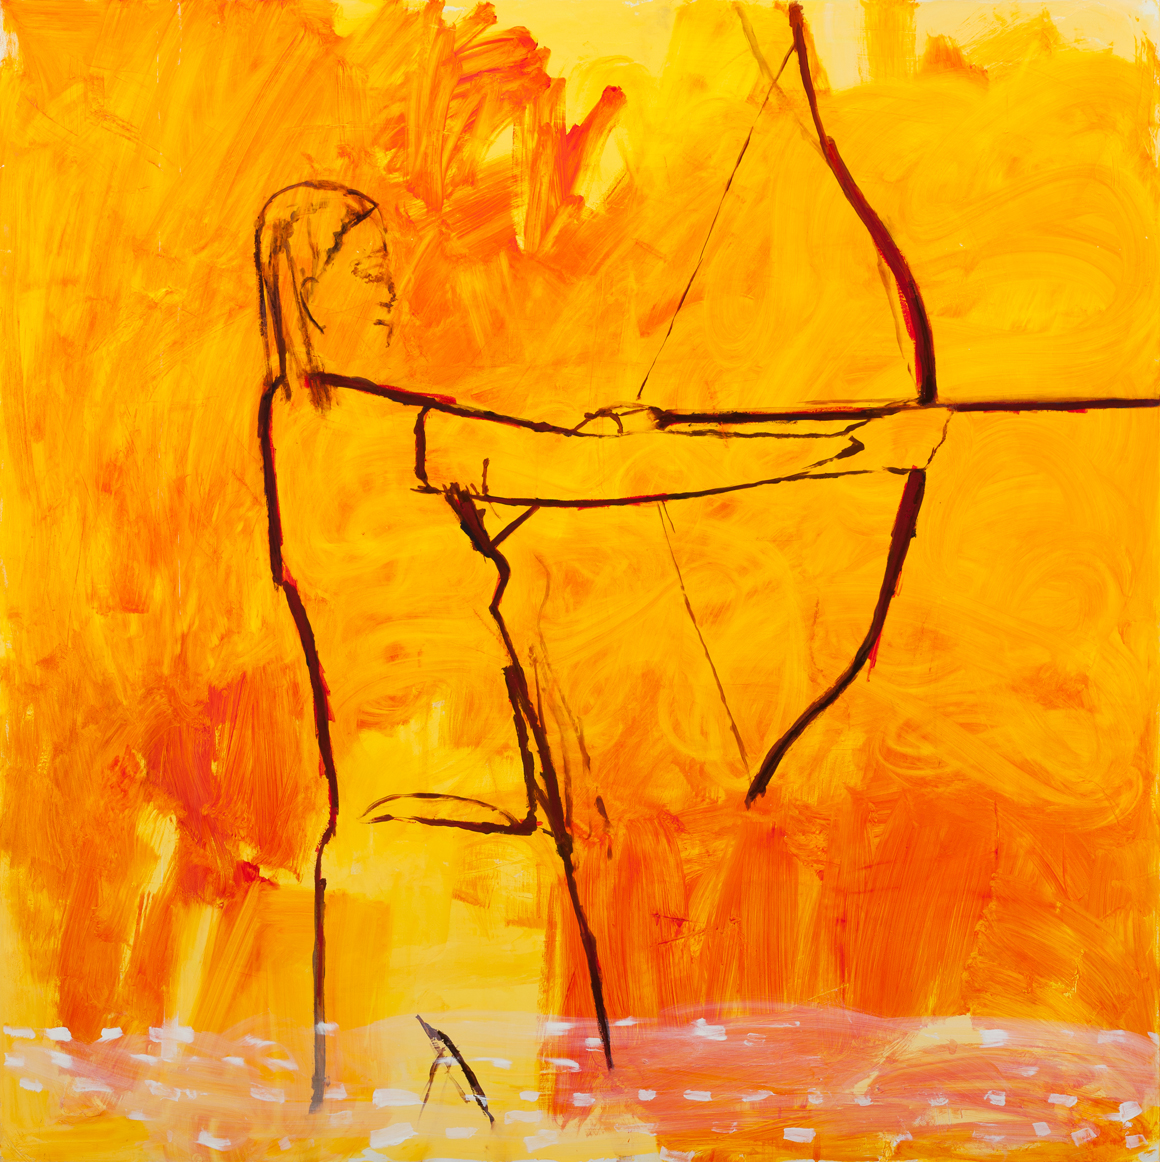 "<p><span class=""name"">William Stockman</span><br><em>Brave Archer 2</em>60 x 60 in (152.4 x 152.4 cm)<br>2017<br><a class='inquire' href='mailto:info@gildargallery.com?subject=Artwork Inquiry WSTO0077&body=I am interested in finding out more about Brave Archer 2 by William Stockman'>Inquire</a></p>"